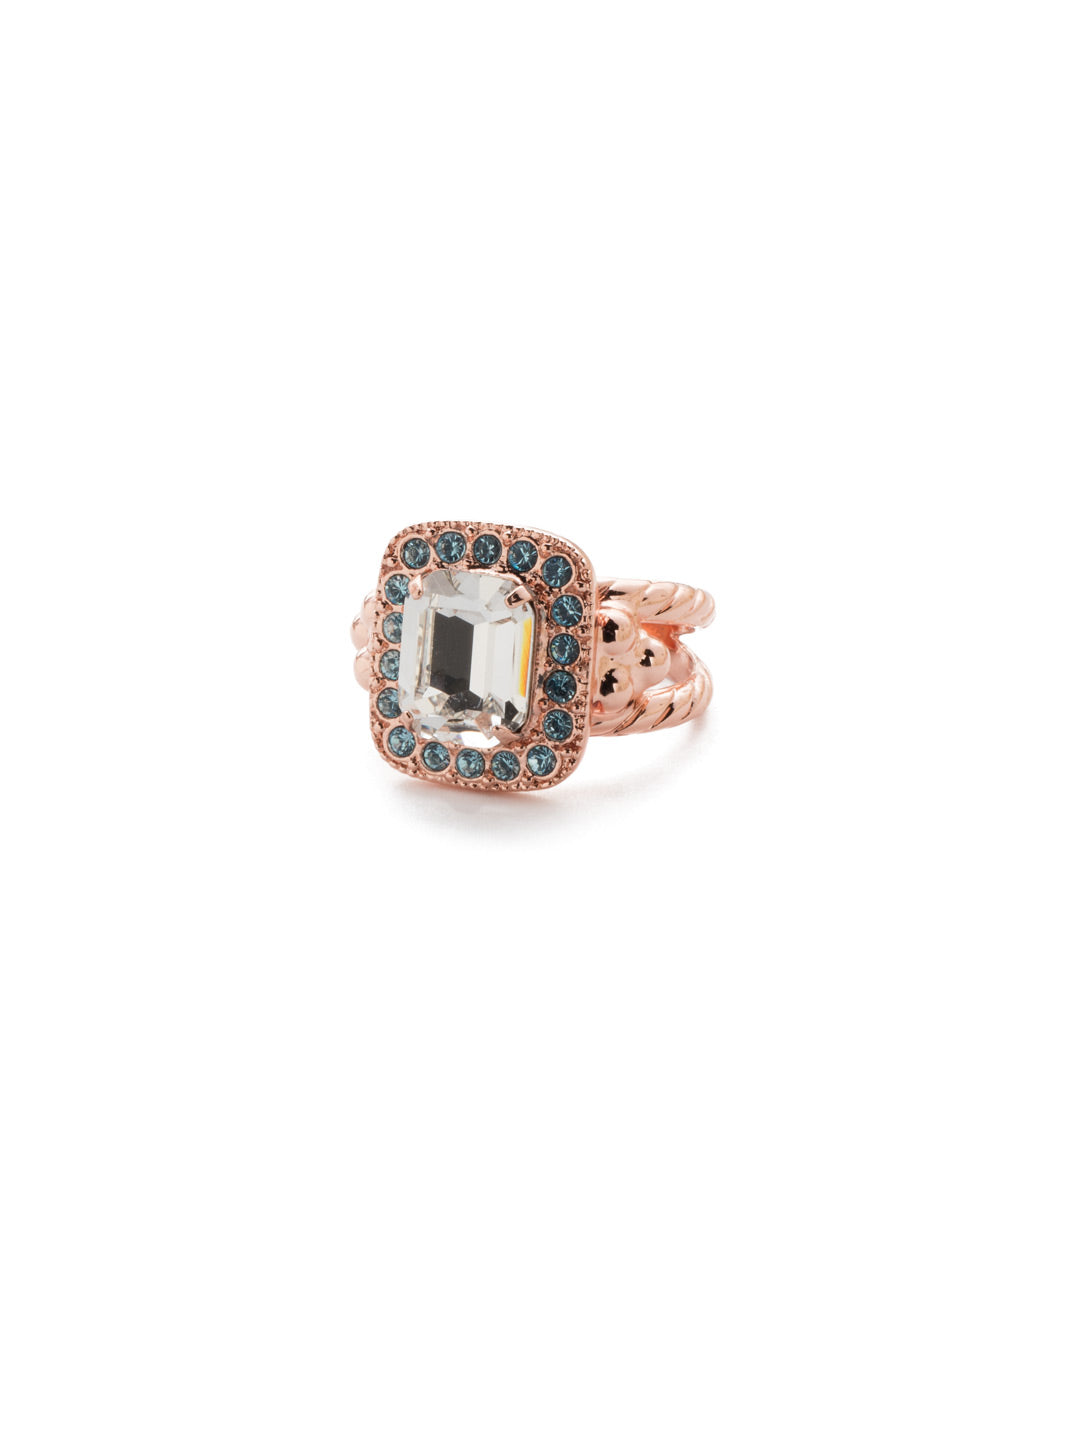 Opulent Octagon Cocktail Ring - RDQ41RGCAZ